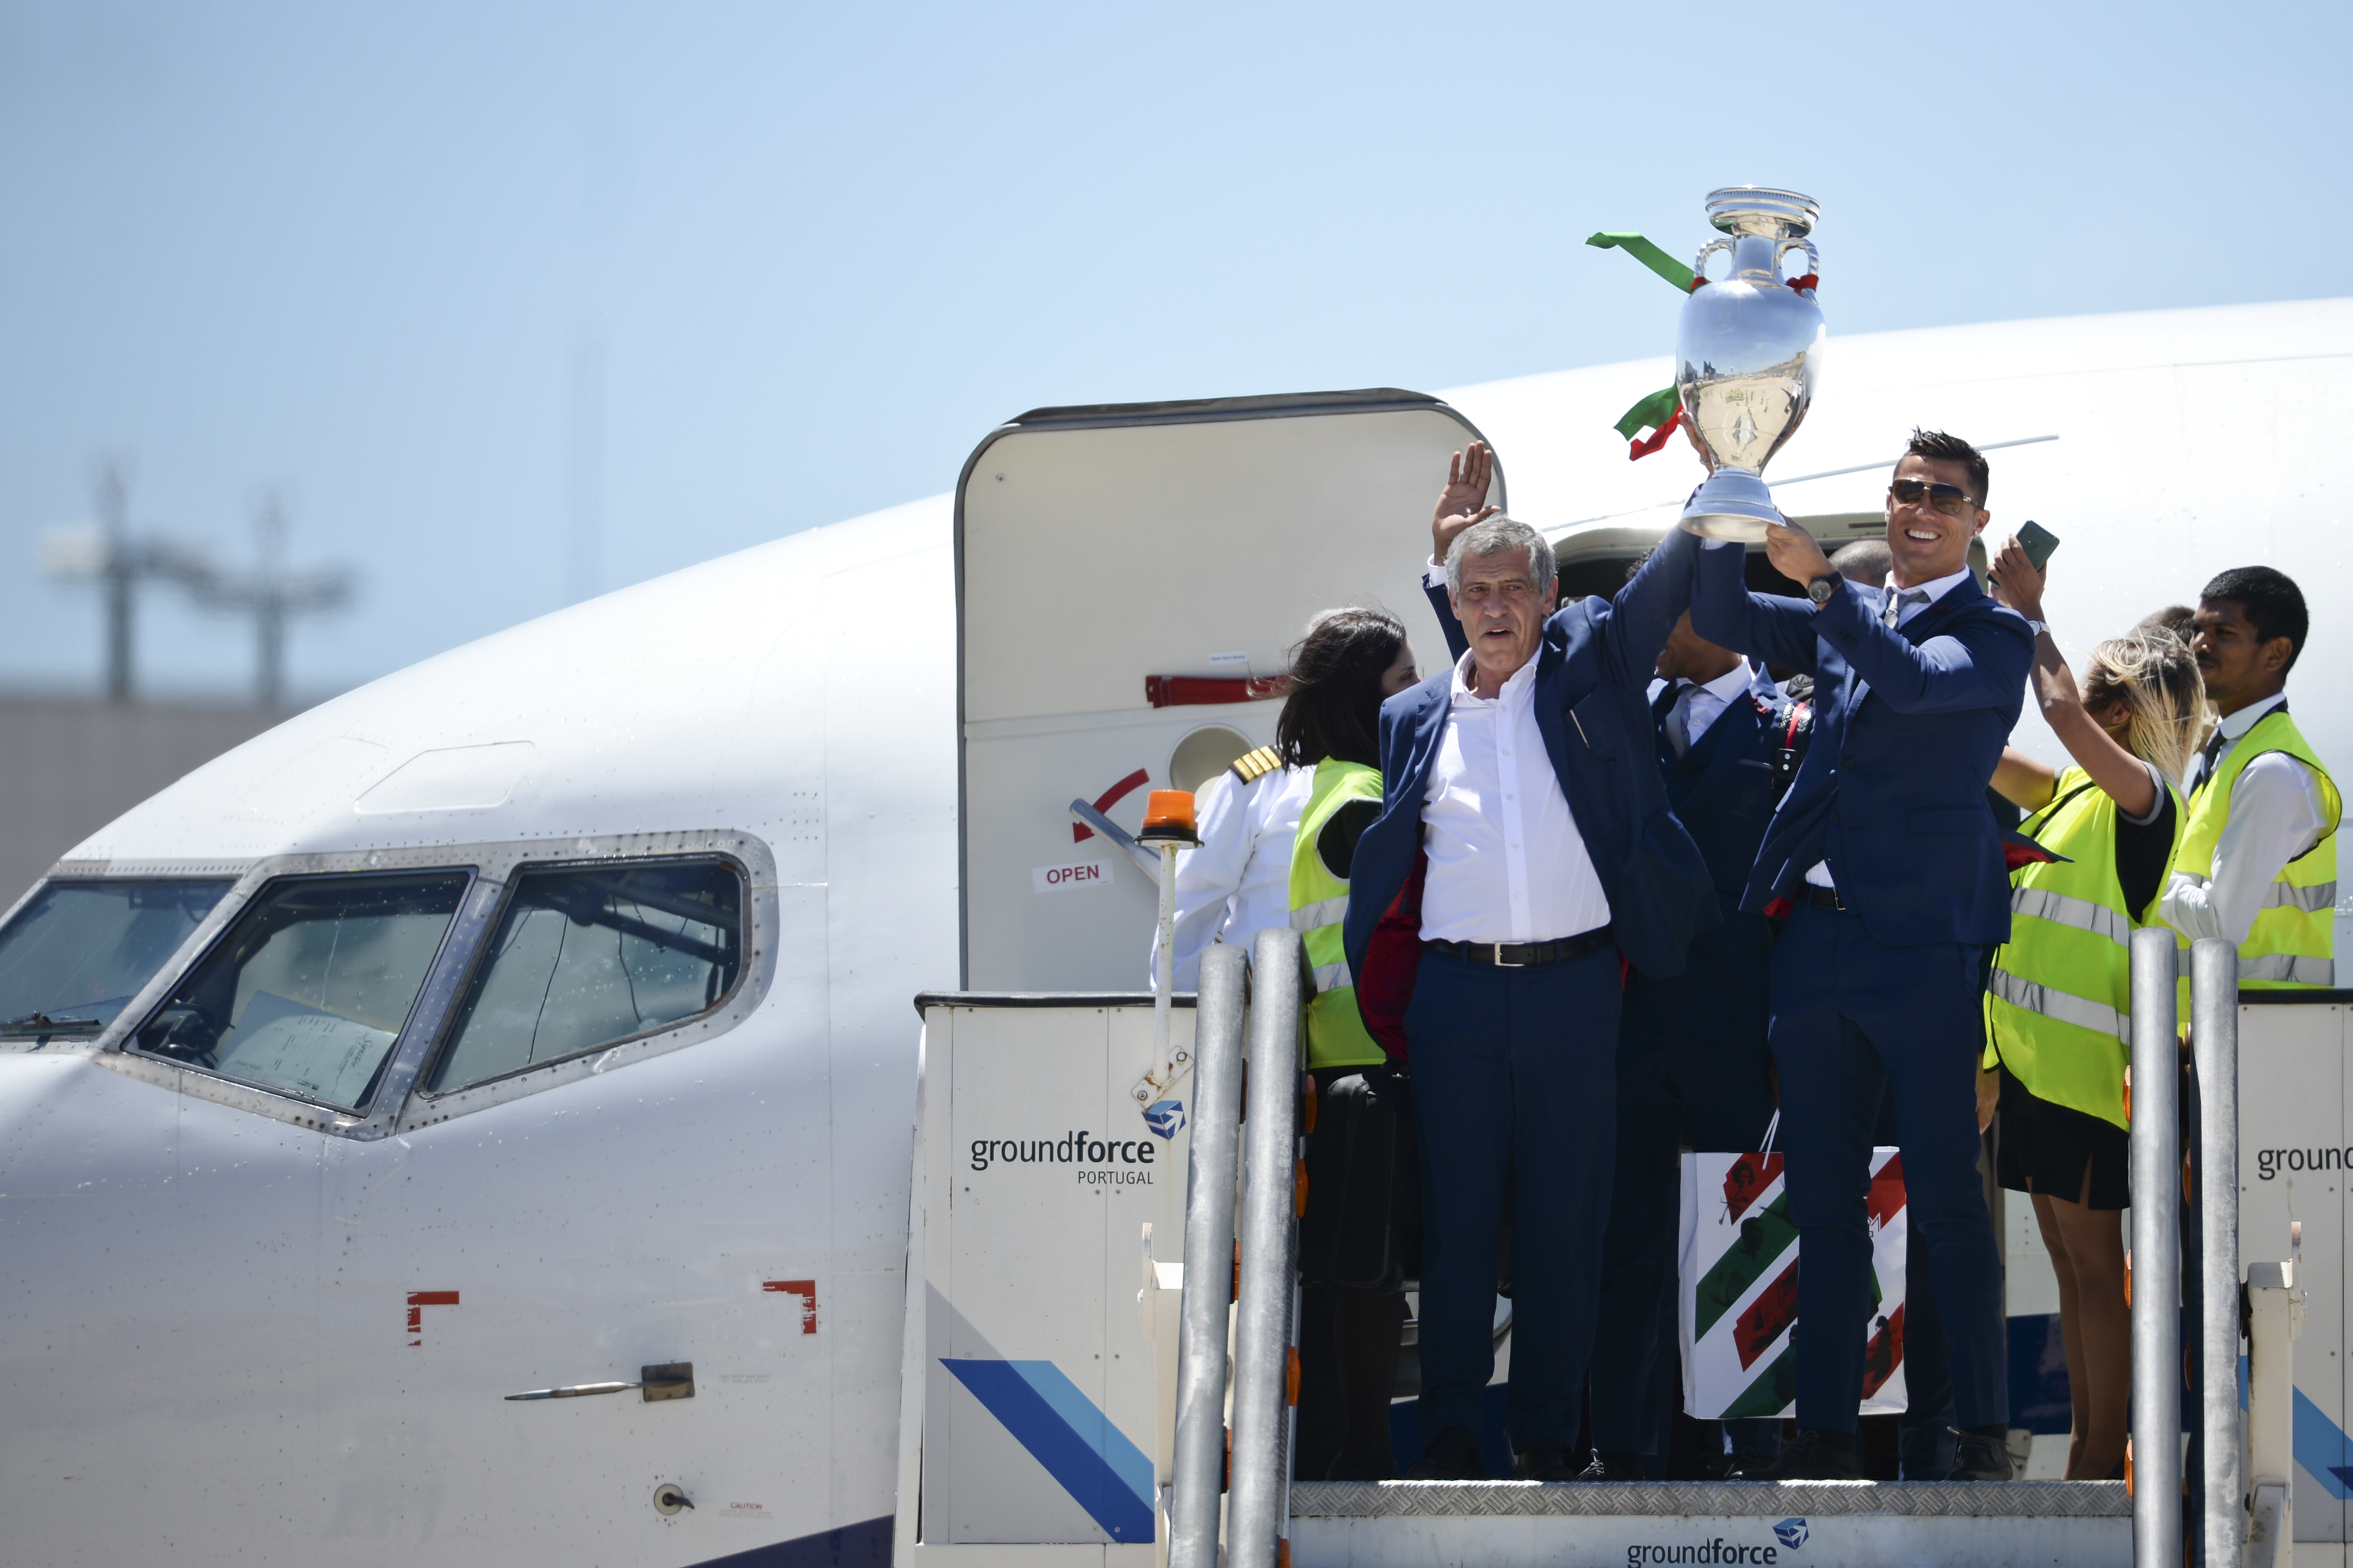 Portugal's head coach Fernando Santos (L) and Portugal's forward Cristiano Ronaldo (R) hold the trophy on arrival at Lisbon airport on July 11, 2016 after their Euro 2016 final football win over France yesterday. The Portuguese football team led by Cristiano Ronaldo returned home to a heroes' welcome today after their upset 1-0 win triumph over France in the Euro 2016 final.  / AFP PHOTO / PATRICIA DE MELO MOREIRA